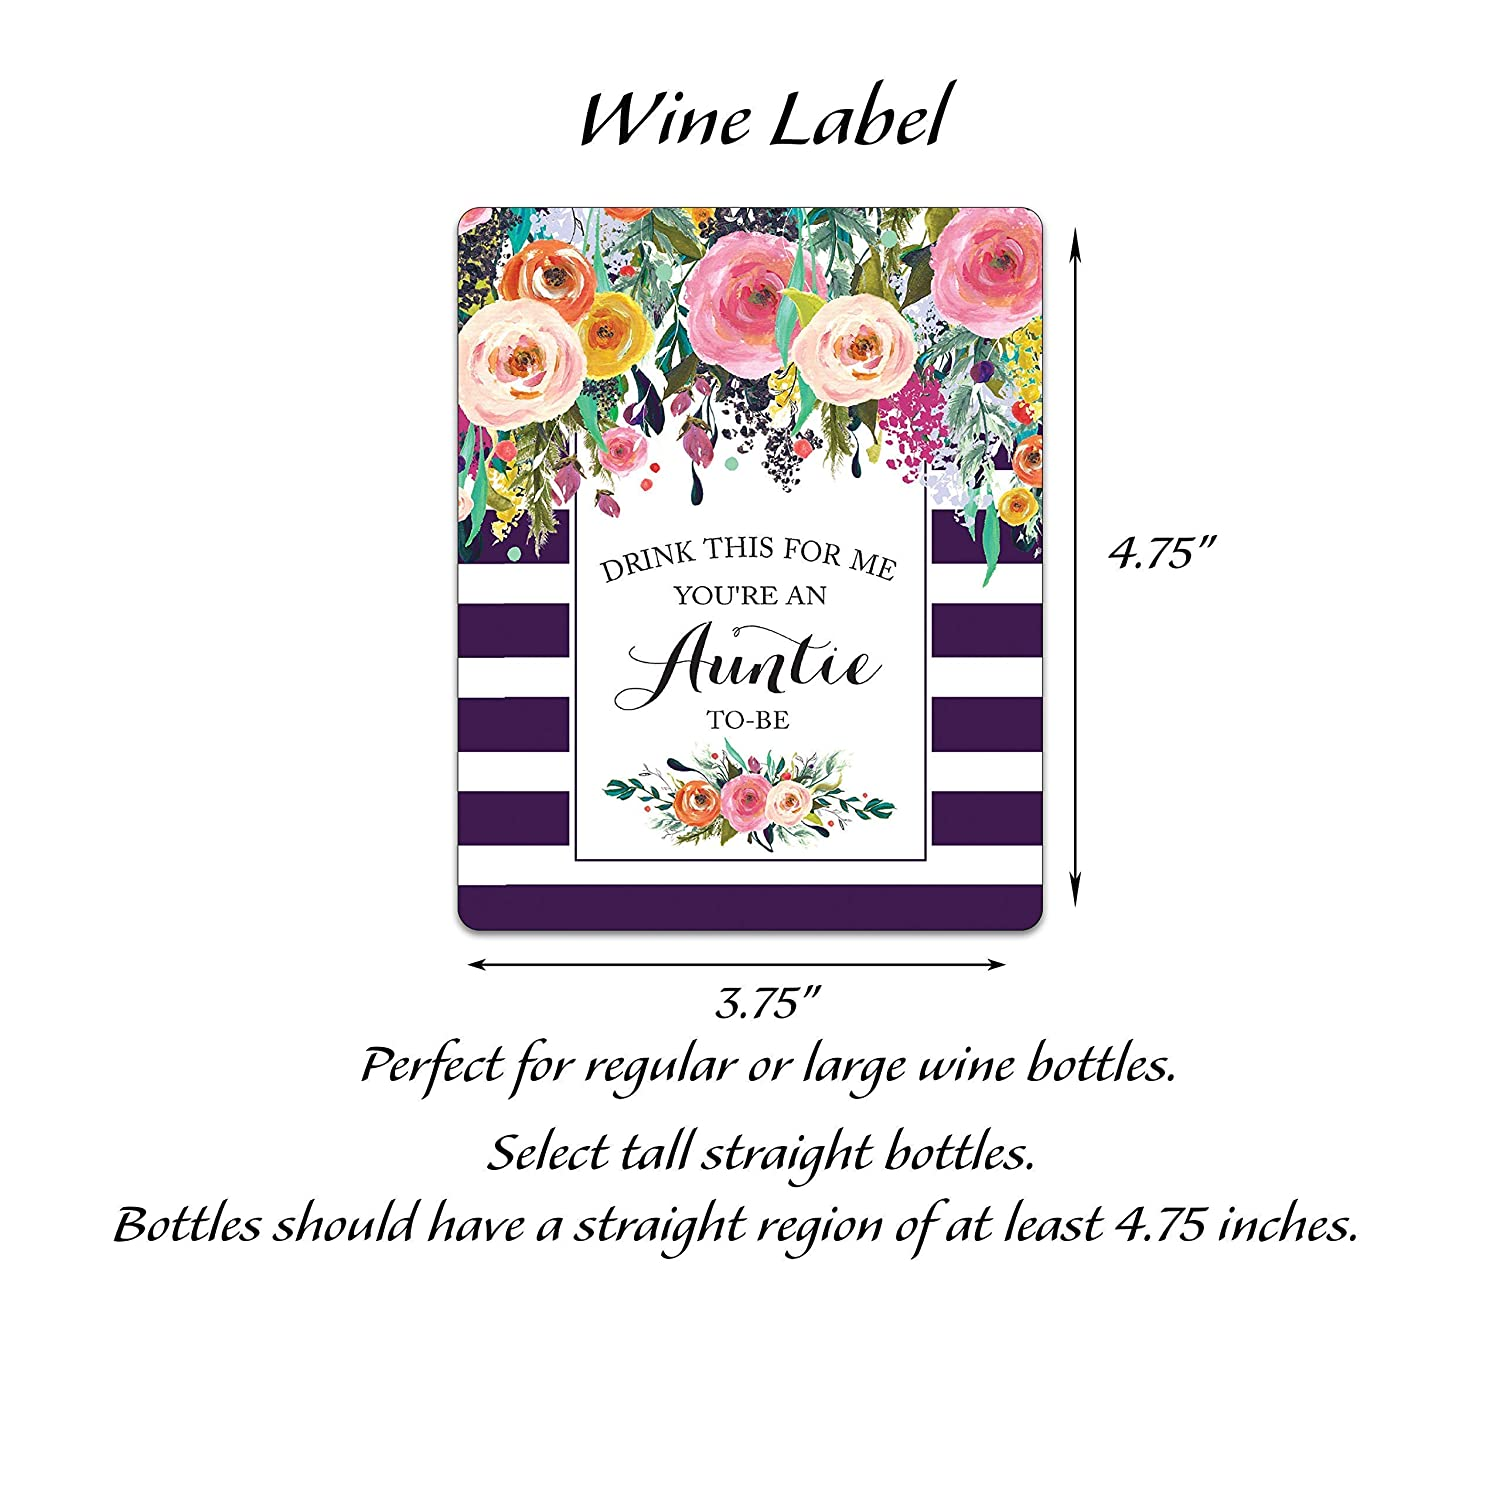 A108-5A1 Alternative to Birth Announcement Cards Youre An Auntie-To-Be Pregnancy Reveal Wine Labels Pregnancy Announcement Wine Labels ● SET of 5 ● Drink This For Me EGGPLANT WEATHERPROOF